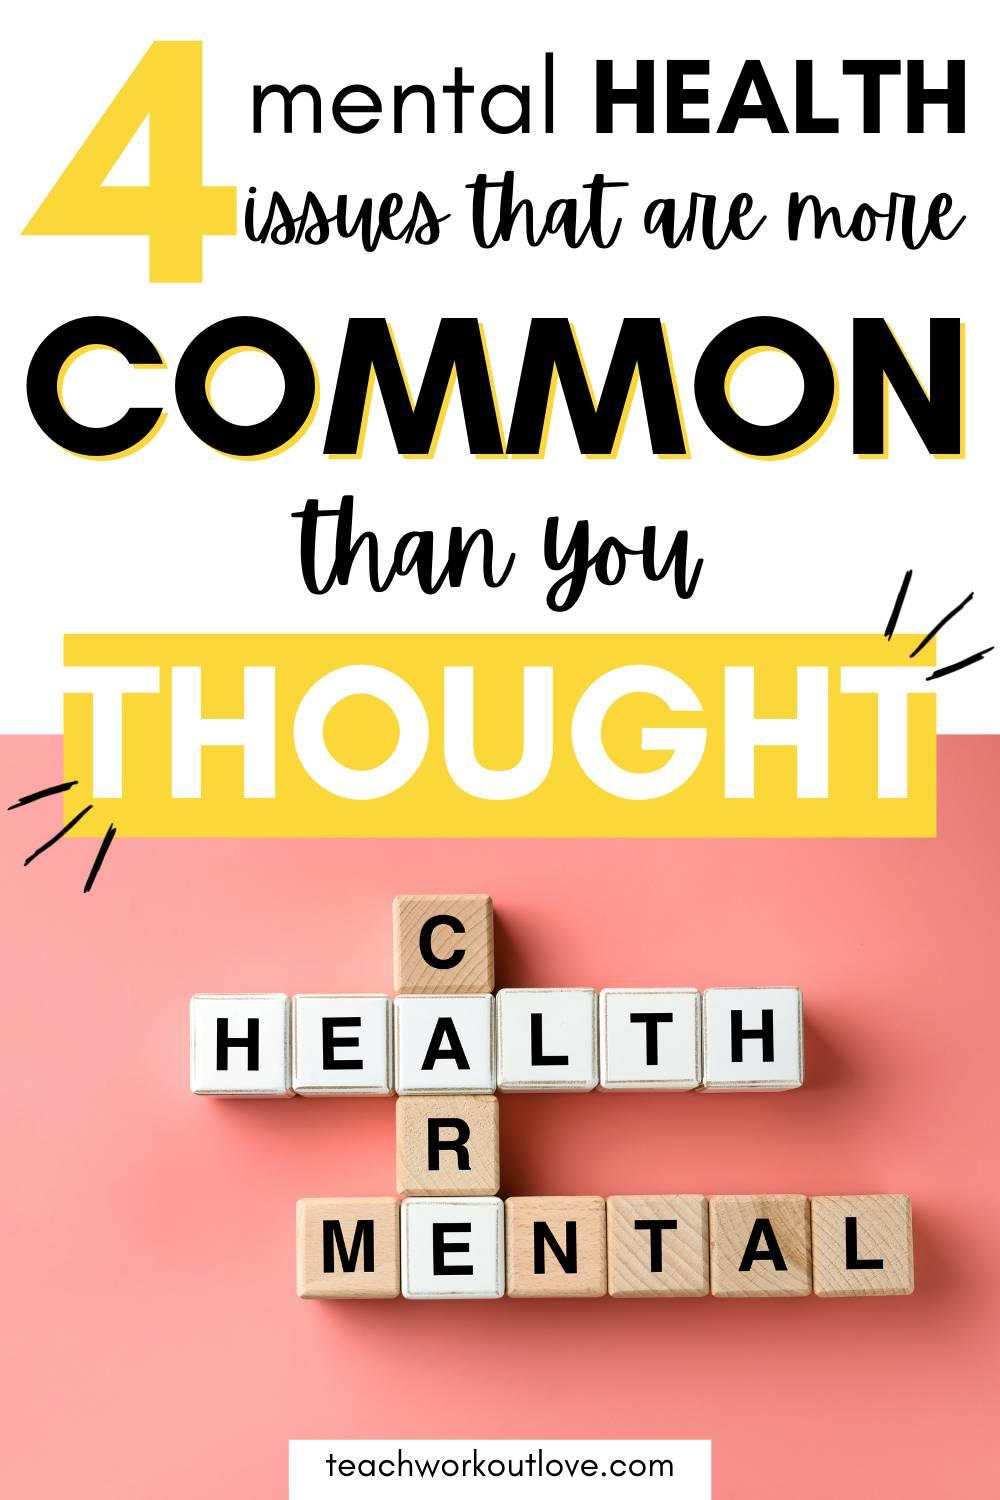 Mental health is still unfortunately seen as a taboo in society today. Here's some conditions that impact millions of people.